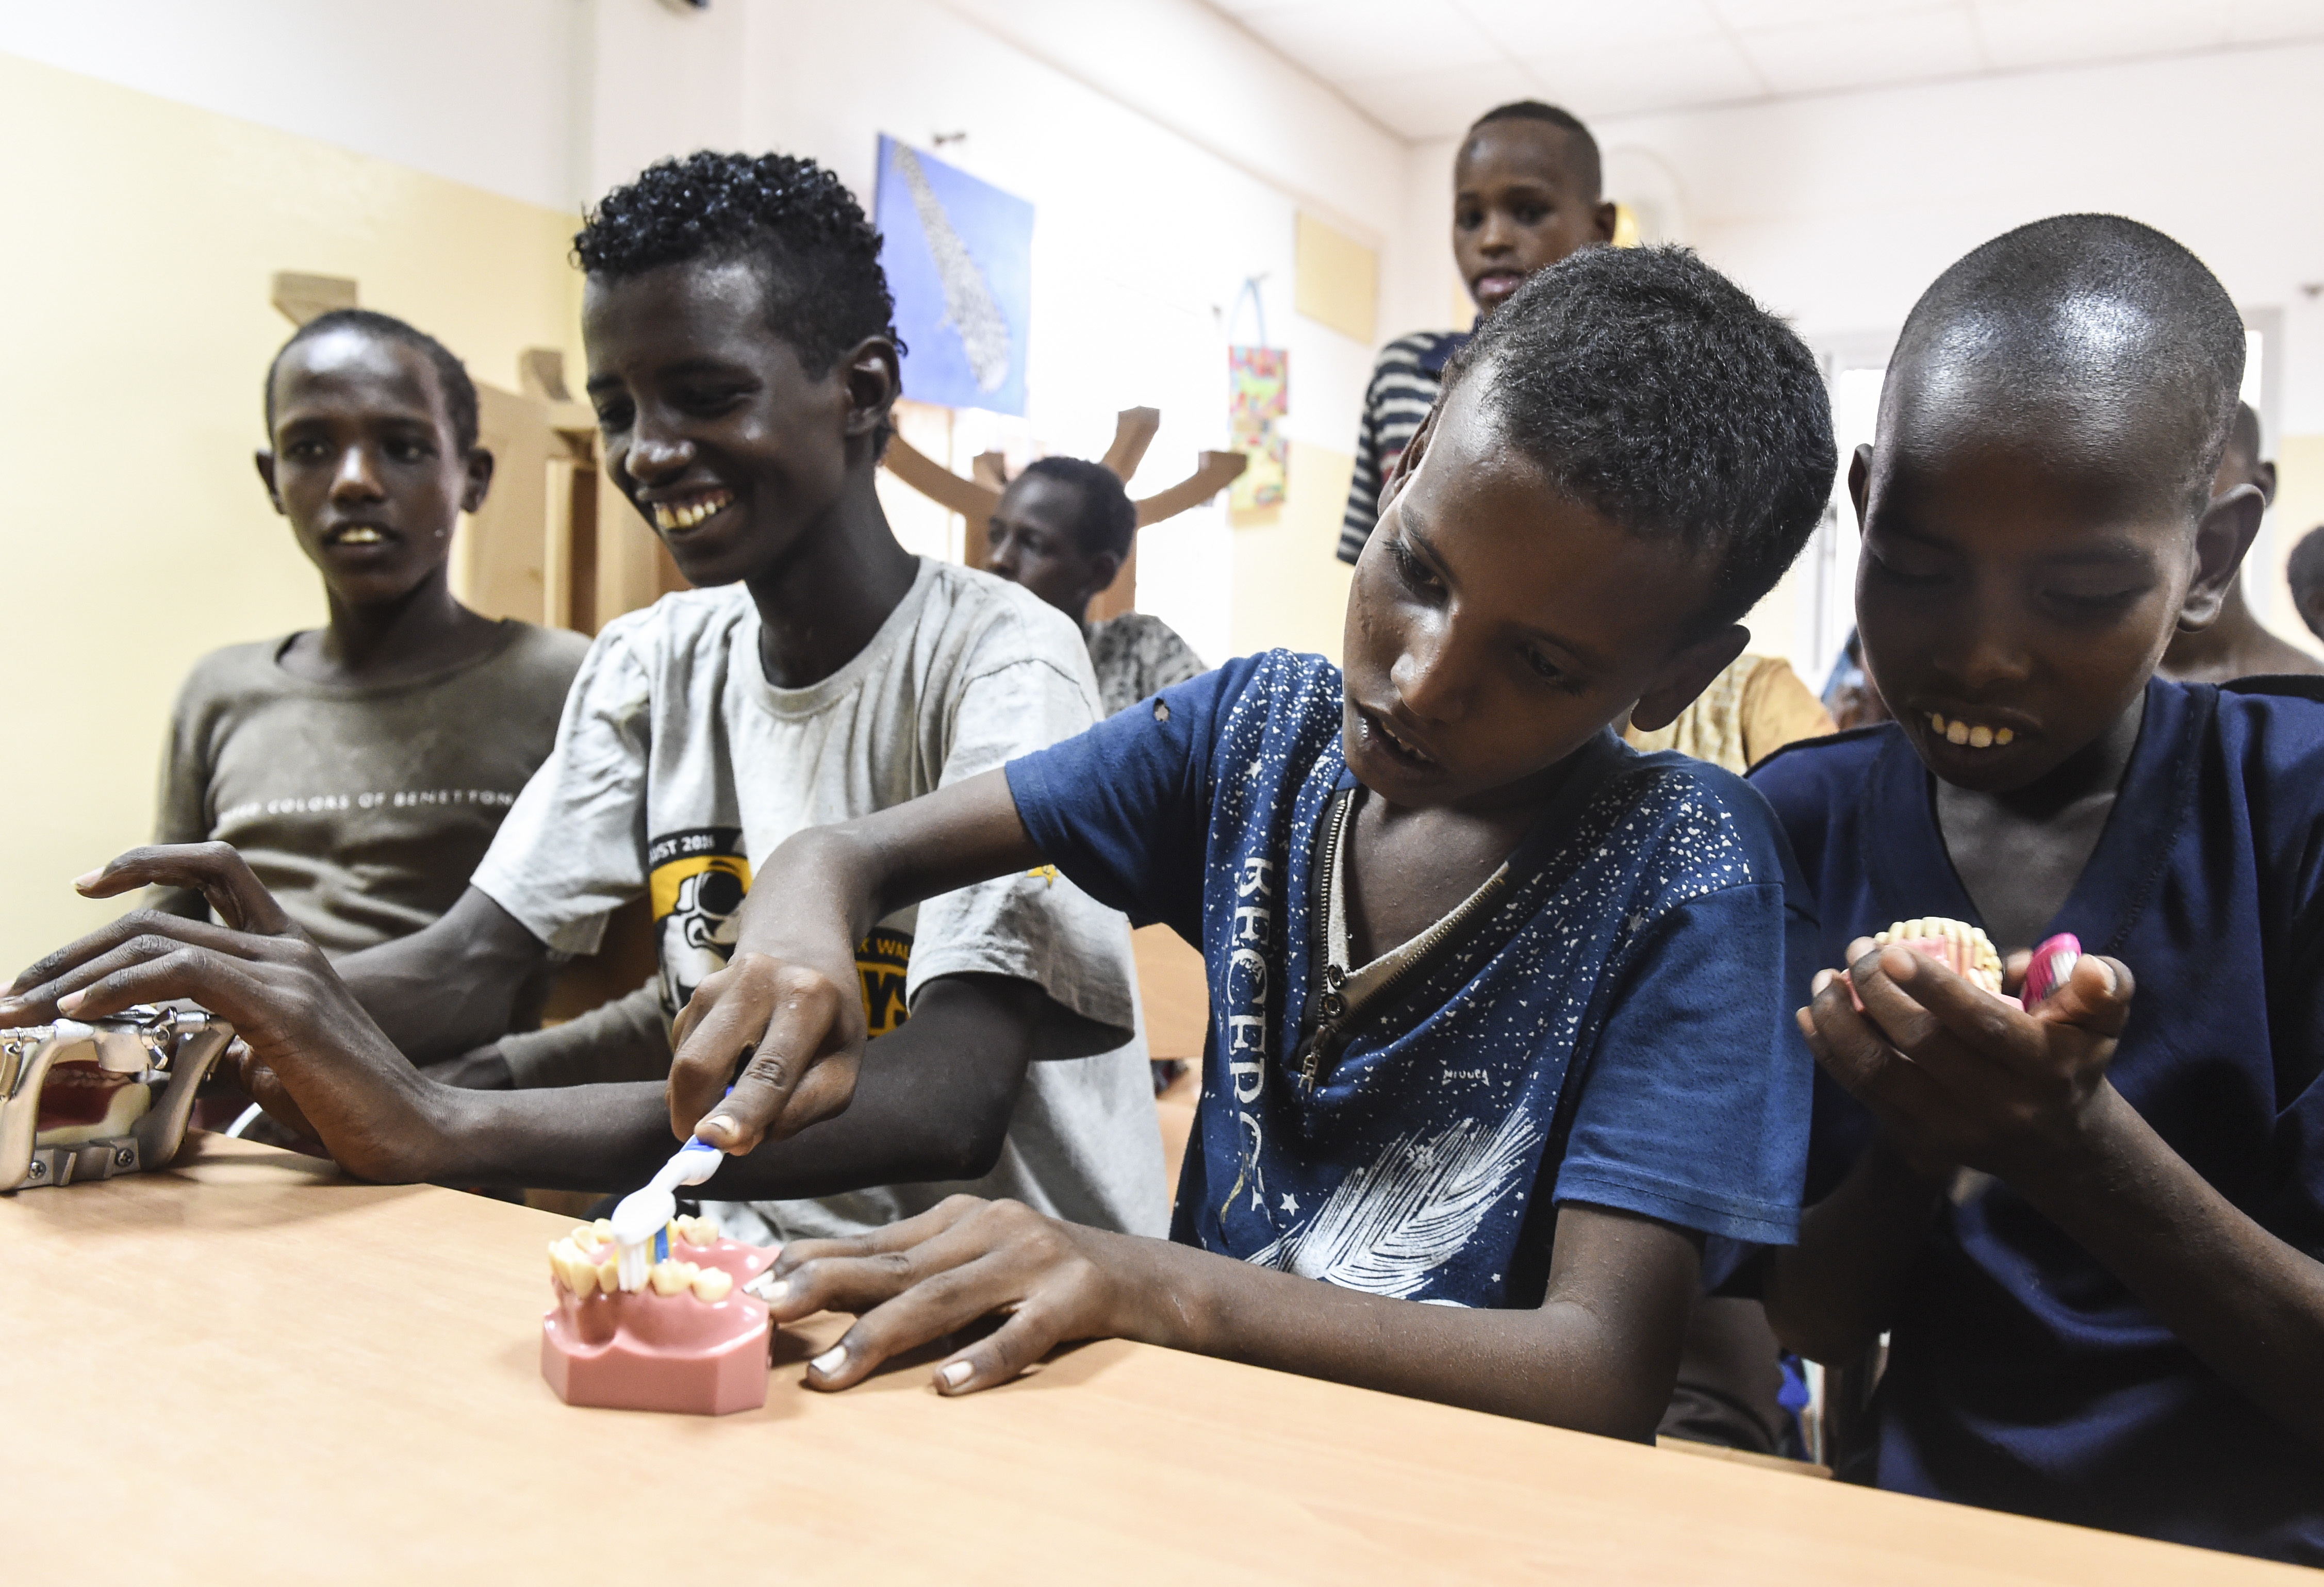 Children use dental typodonts during an oral hygiene demonstration at Caritas Djibouti, a humanitarian organization in Djibouti City, Djibouti, Aug. 8, 2017. In support of Combined Joint Task Force-Horn of Africa's efforts to promote regional security and stability, the 443rd Civil Affairs Battalion functional specialty team conducted multiple oral hygiene instruction classes for approximately 60 children from the local area. (U.S. Air Force photo by Staff Sgt. Eboni Prince)